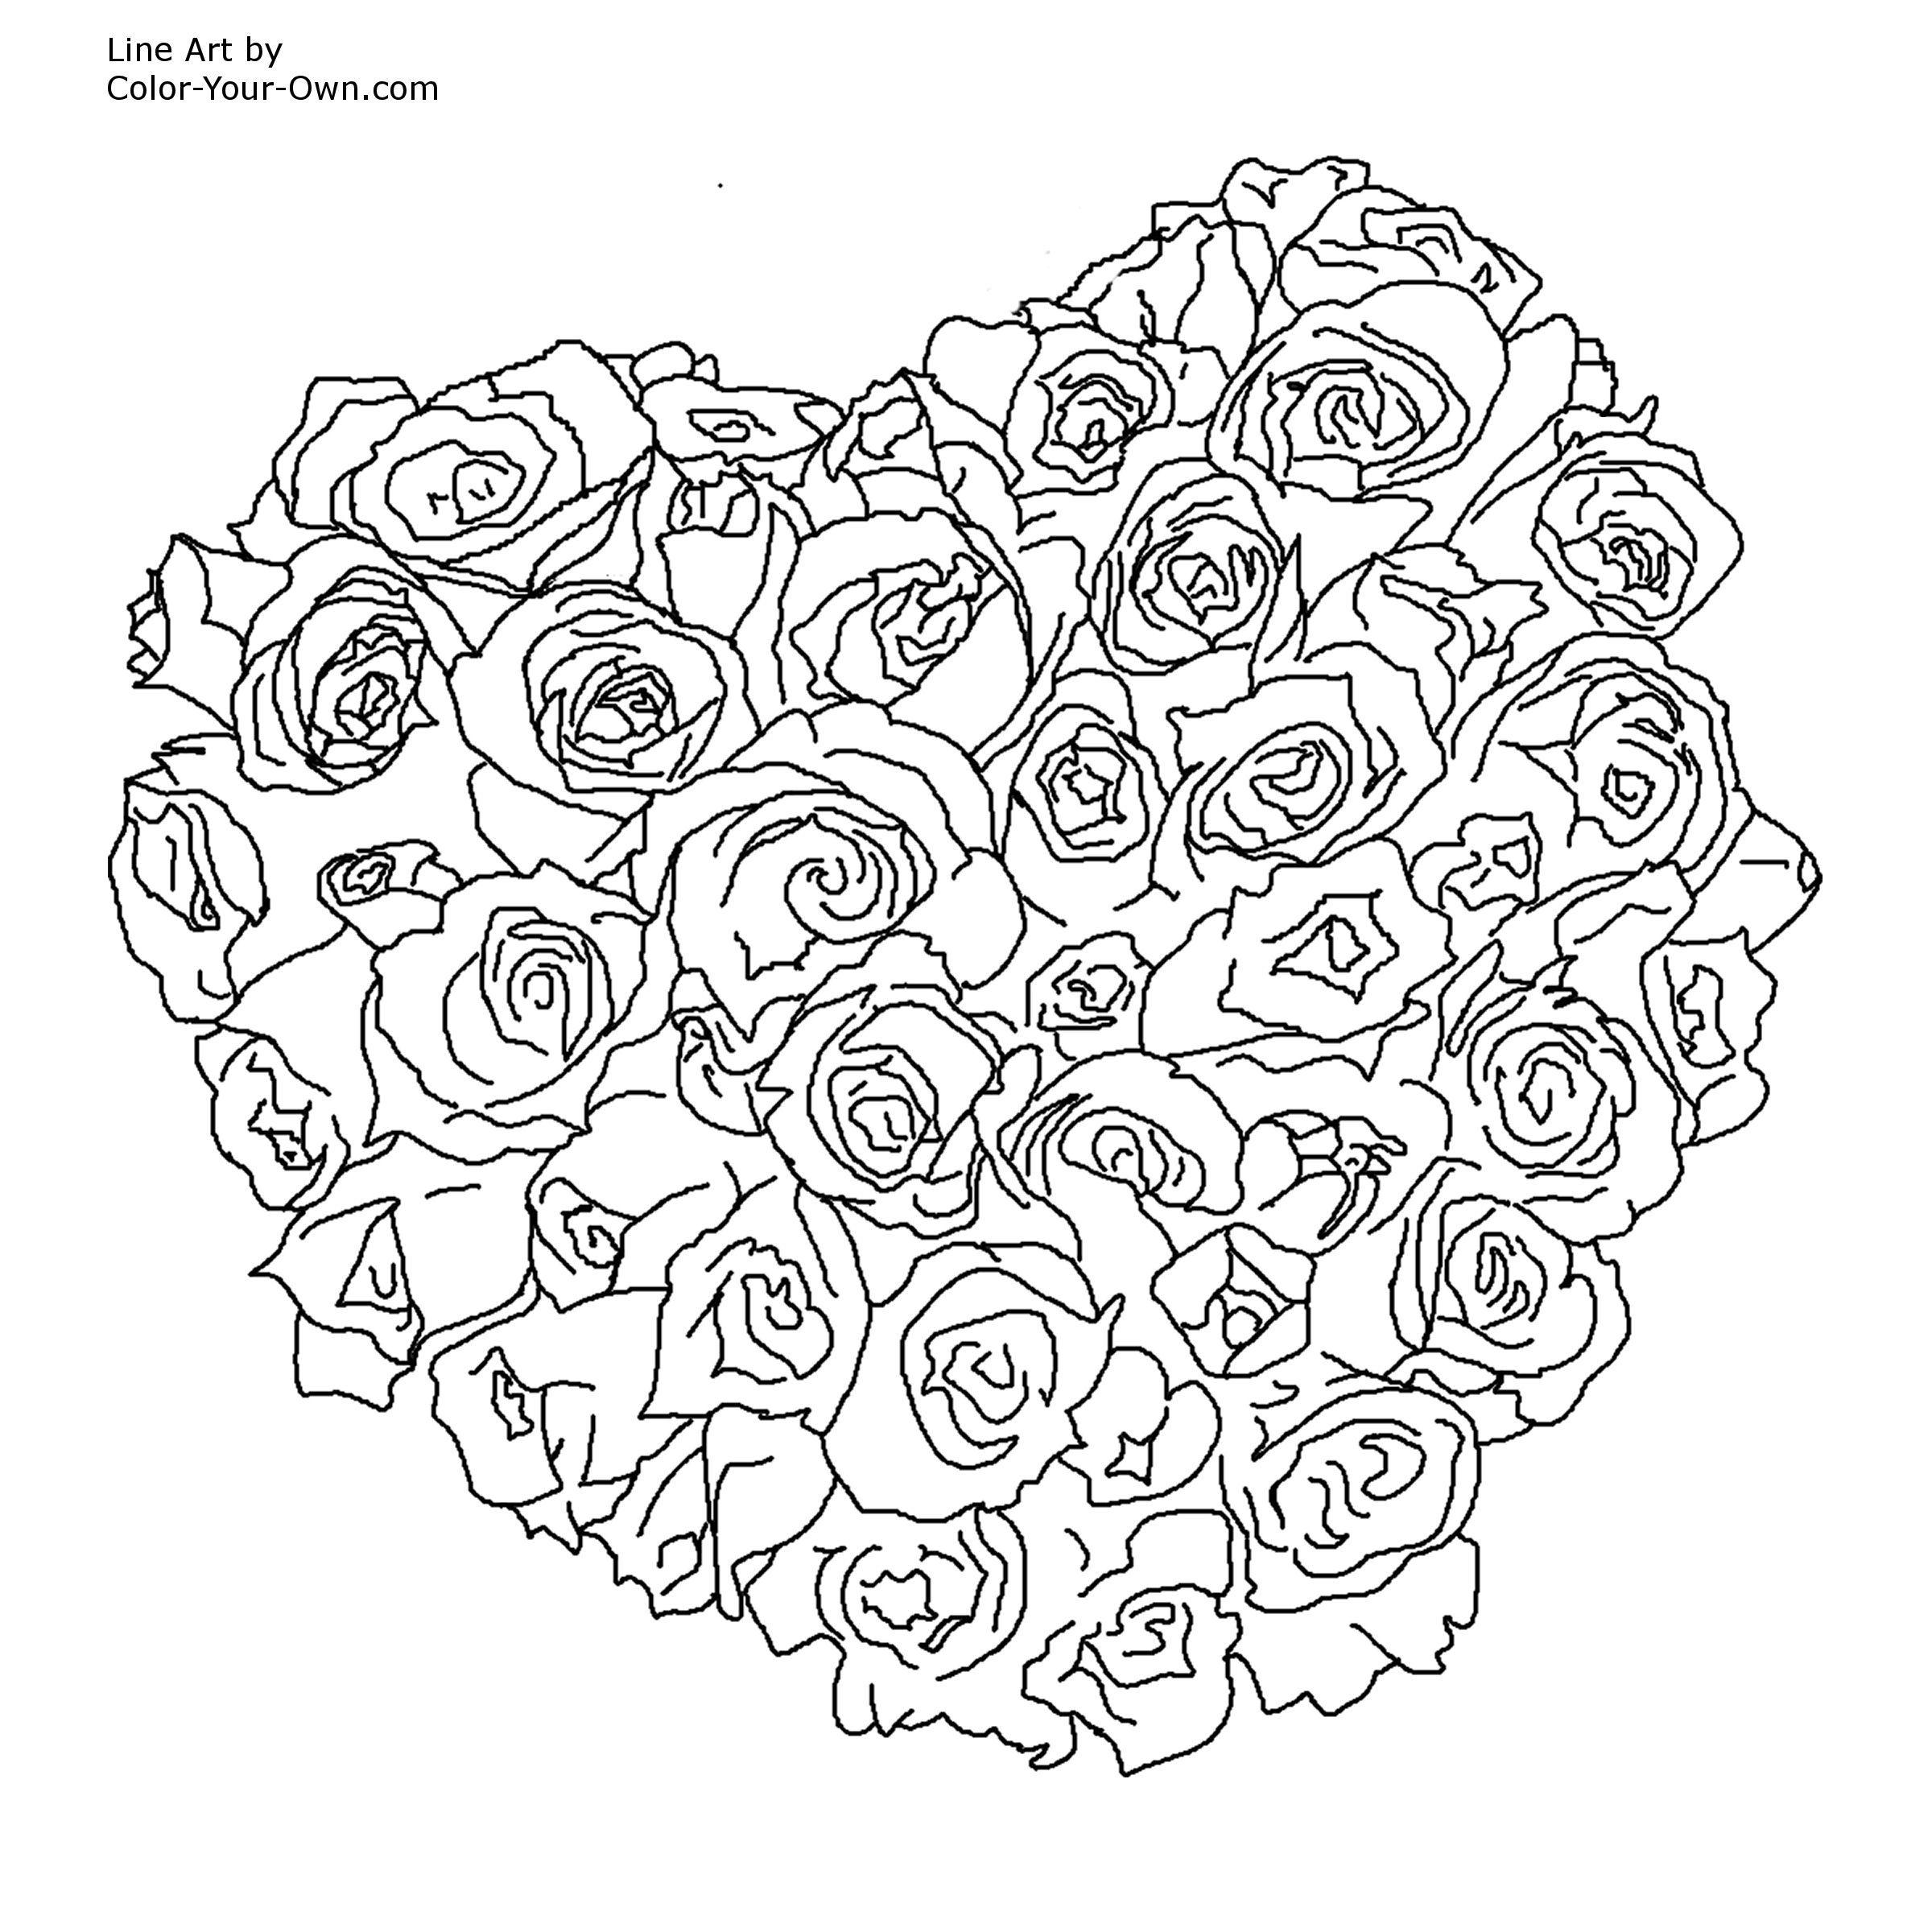 Coloring pages for adults valentines day - Coloring Sheets